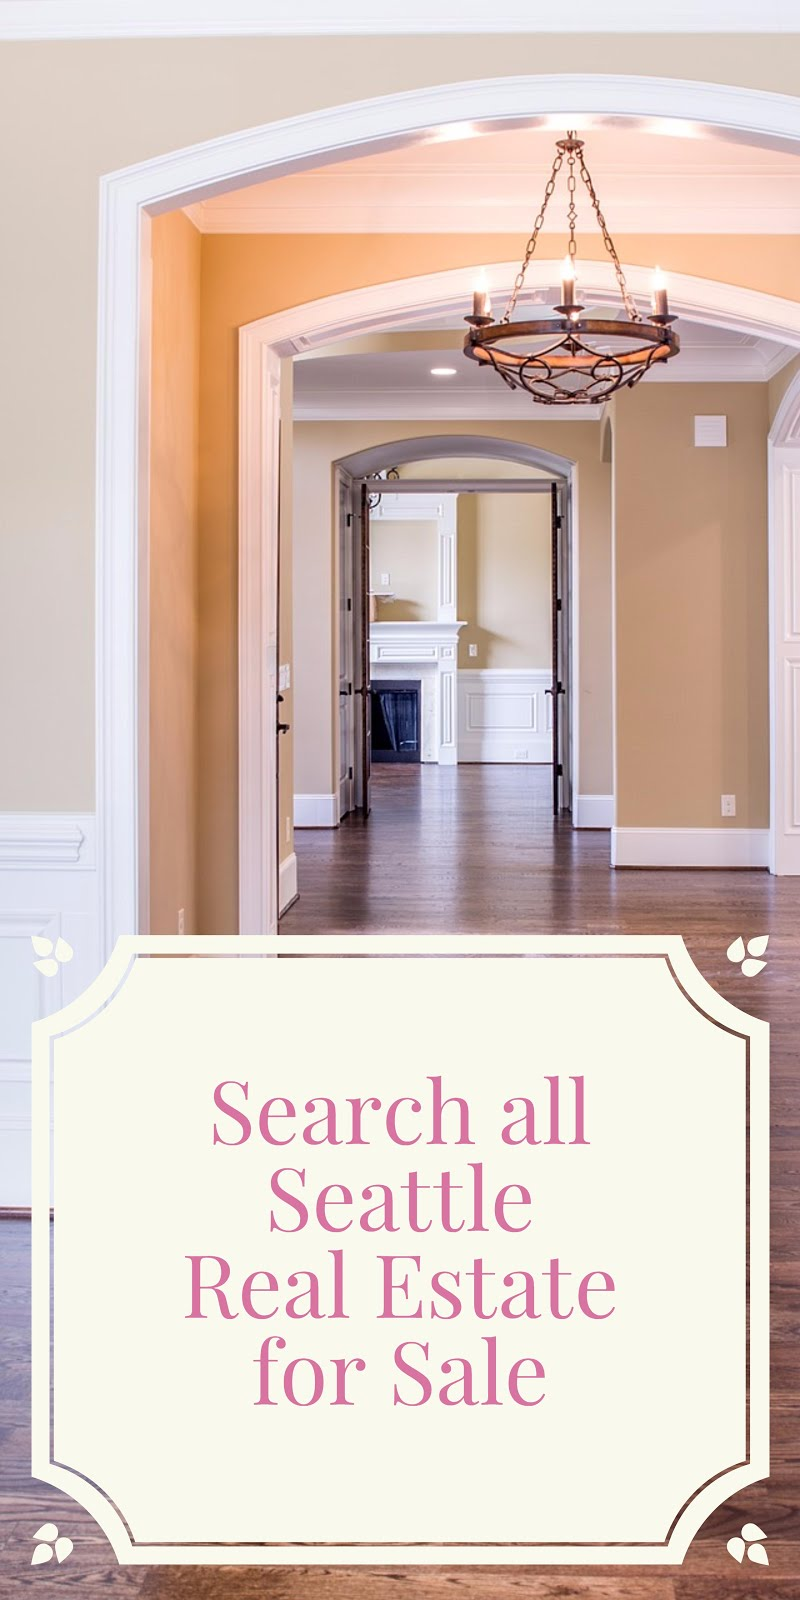 Search all Seattle Real Estate